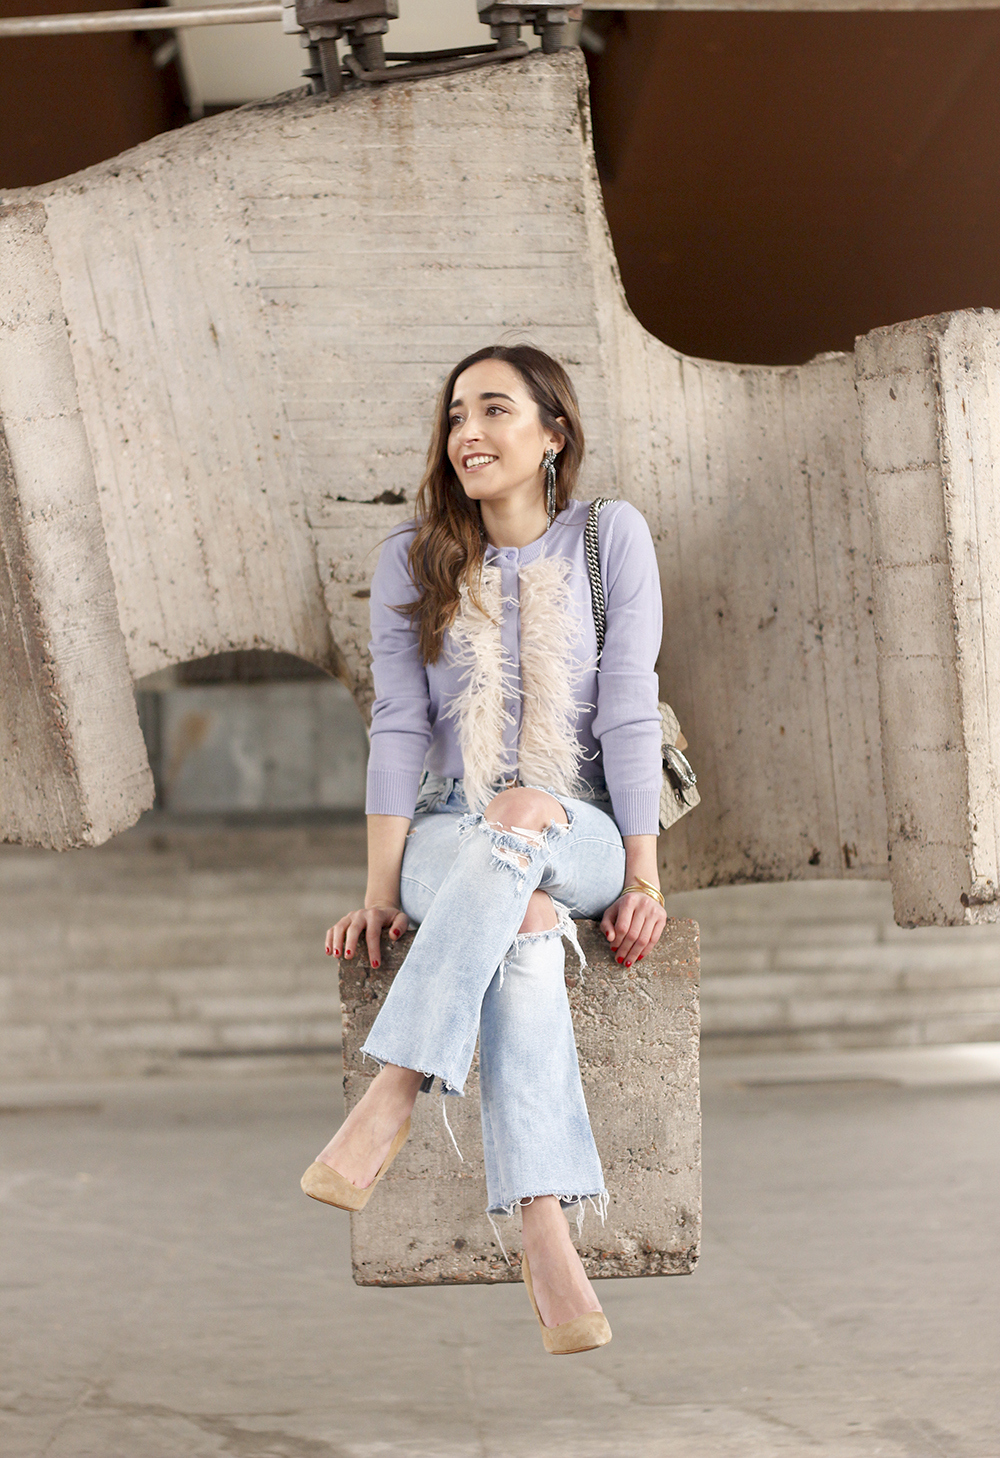 lavender sweater ripped jeans gucci bag nude heels casual street style casual outfit 201911